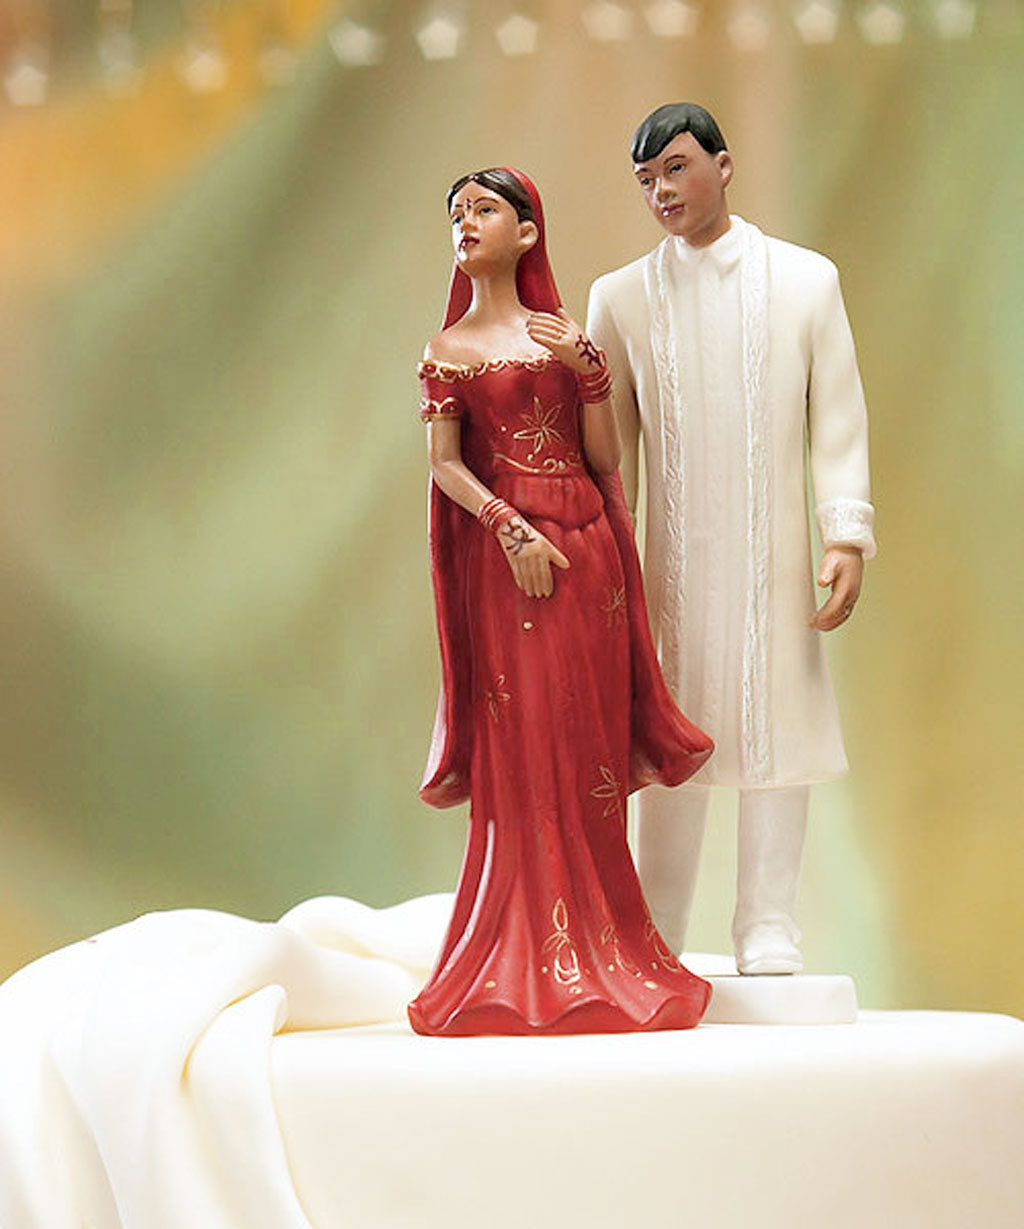 traditional-indian-wedding-star-cake-topper-cake-picture-ideas Top 10 Most Unique and Funny Wedding Cake Toppers 2019